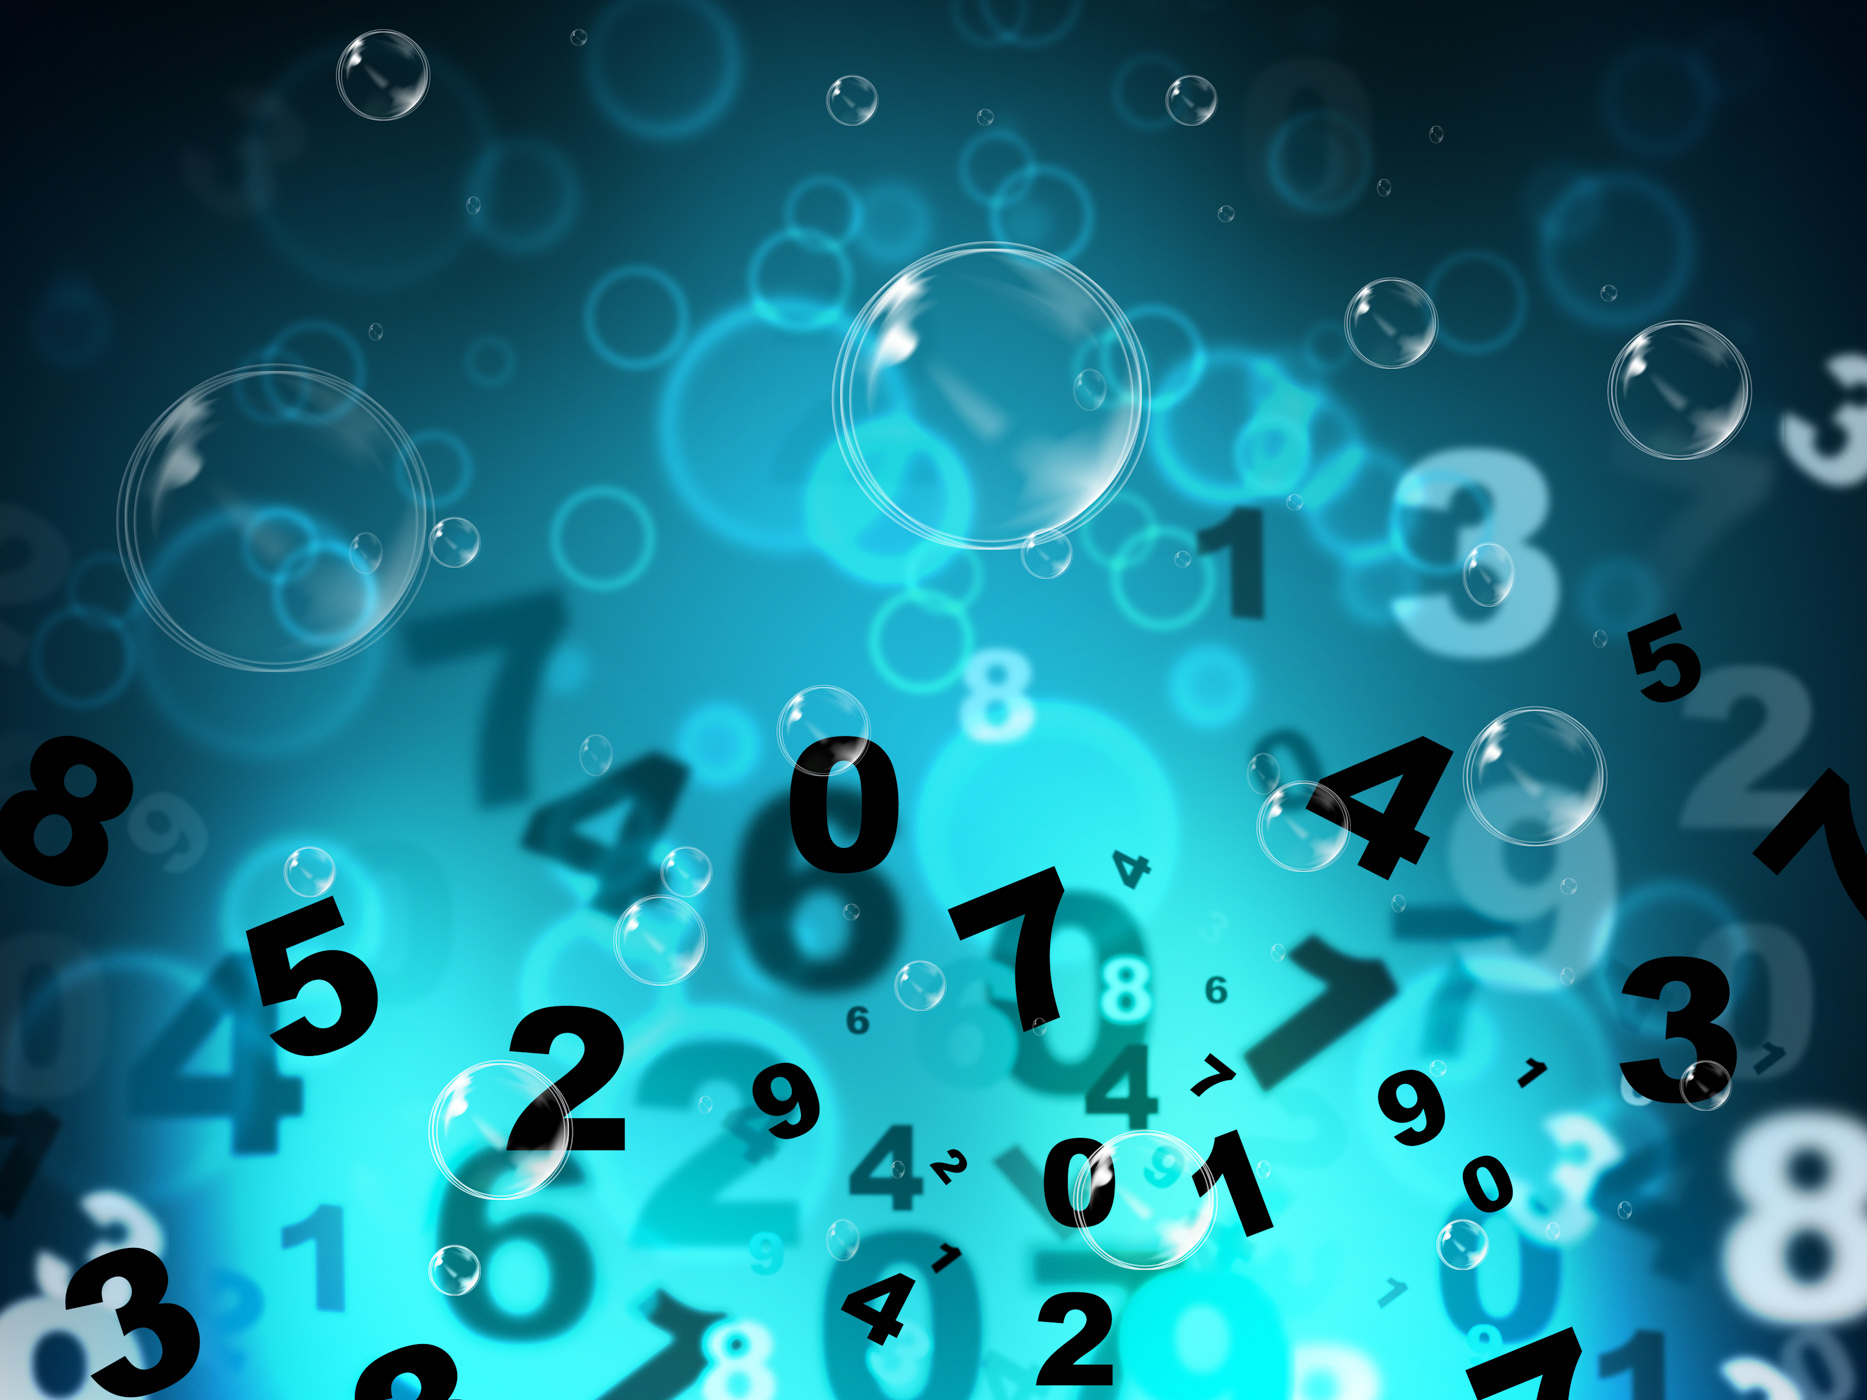 Numbers Mathematics Shows High Tec And Numerical, Blue, Maths, Tech, Numerical, HQ Photo